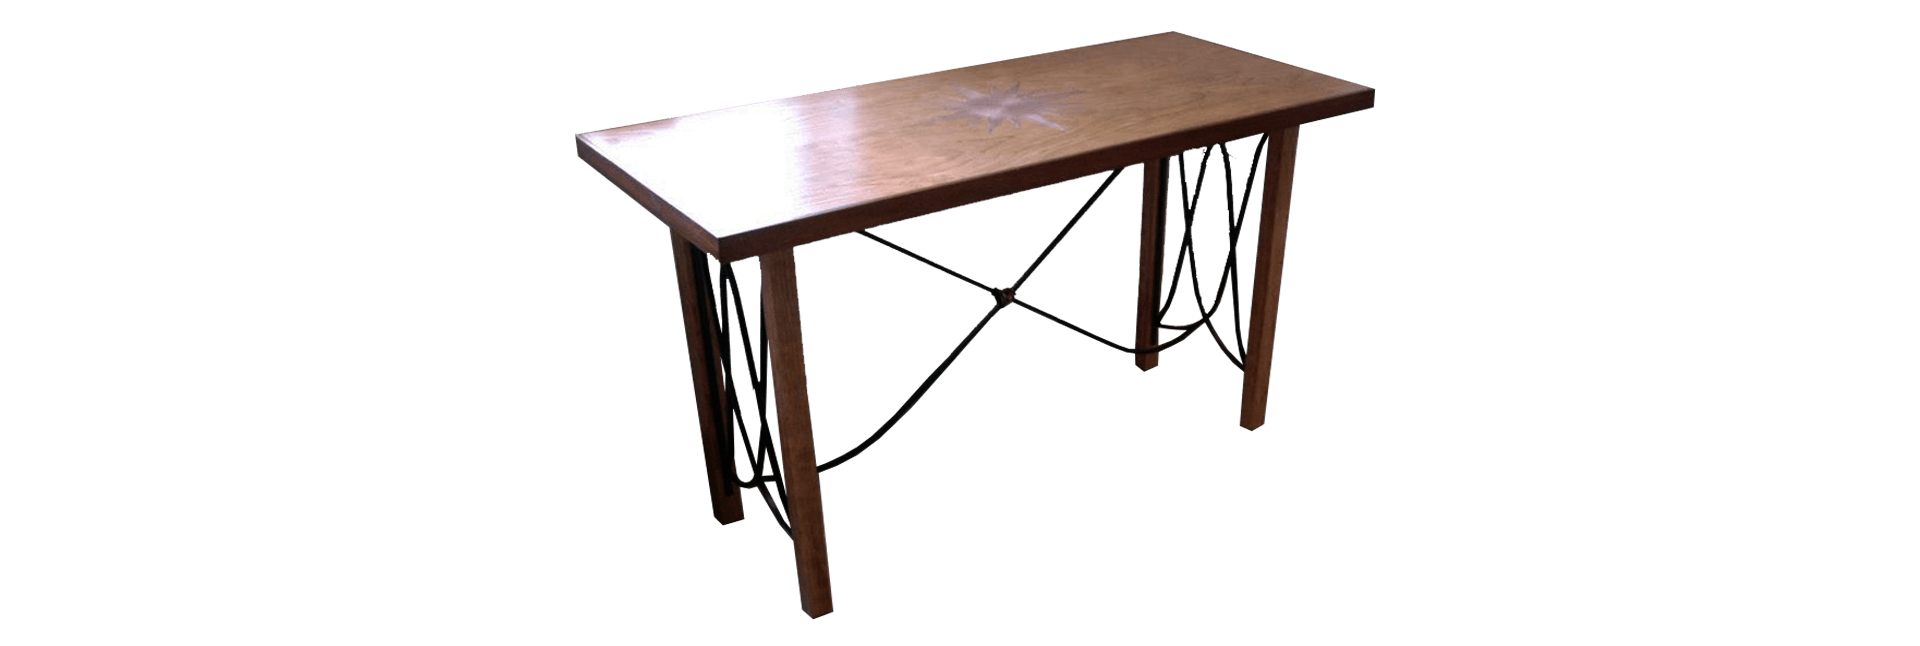 Ela-Sofa-Table